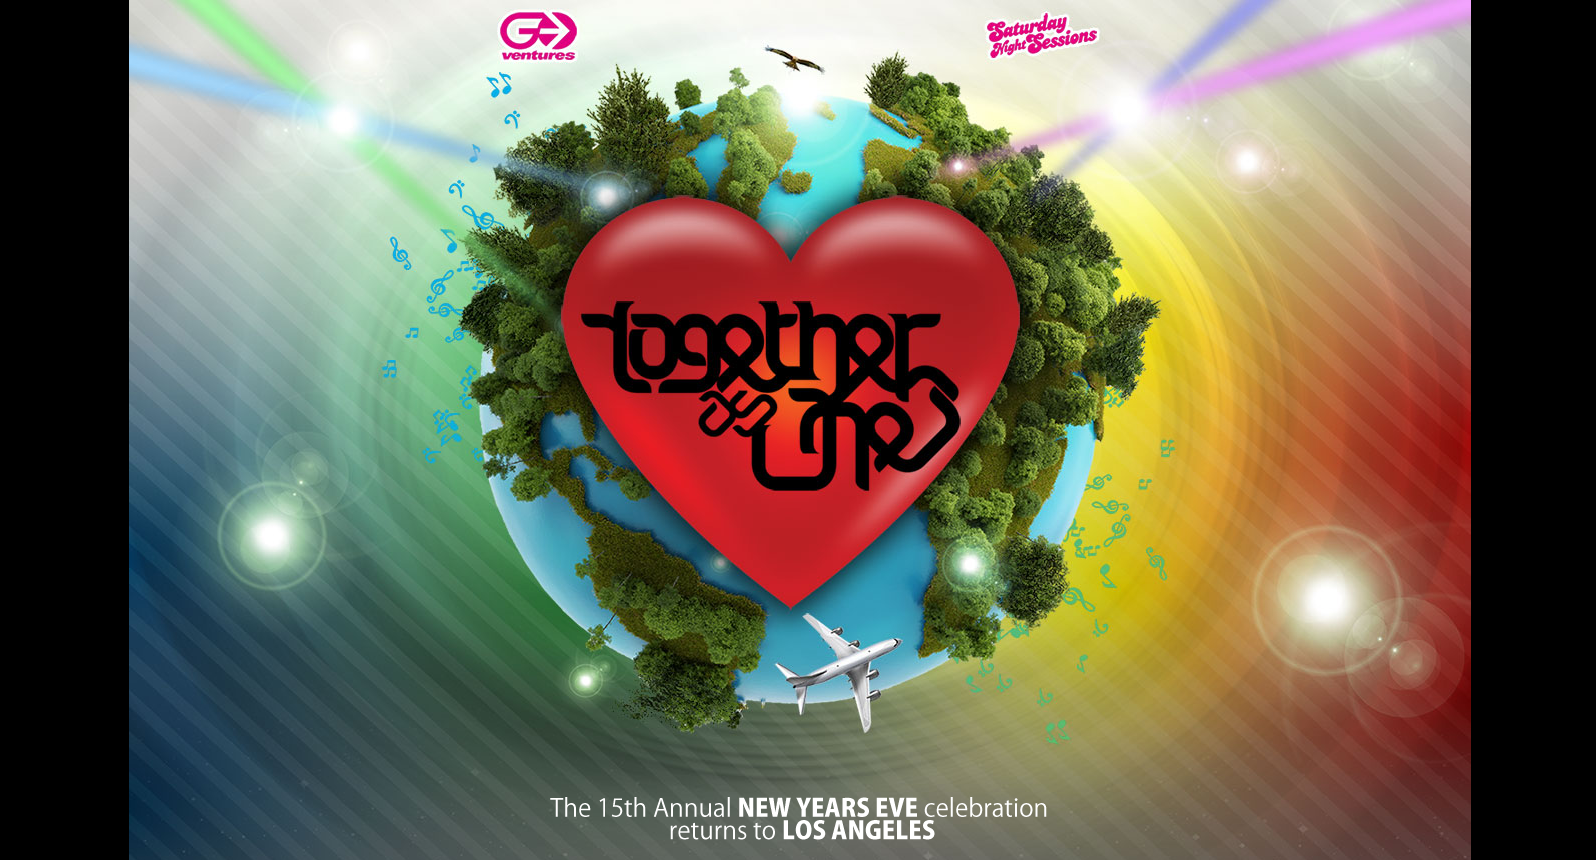 Together As One (TAO) NYE 2013 at The Shrine Expo Hall 12-31-12 Tickets